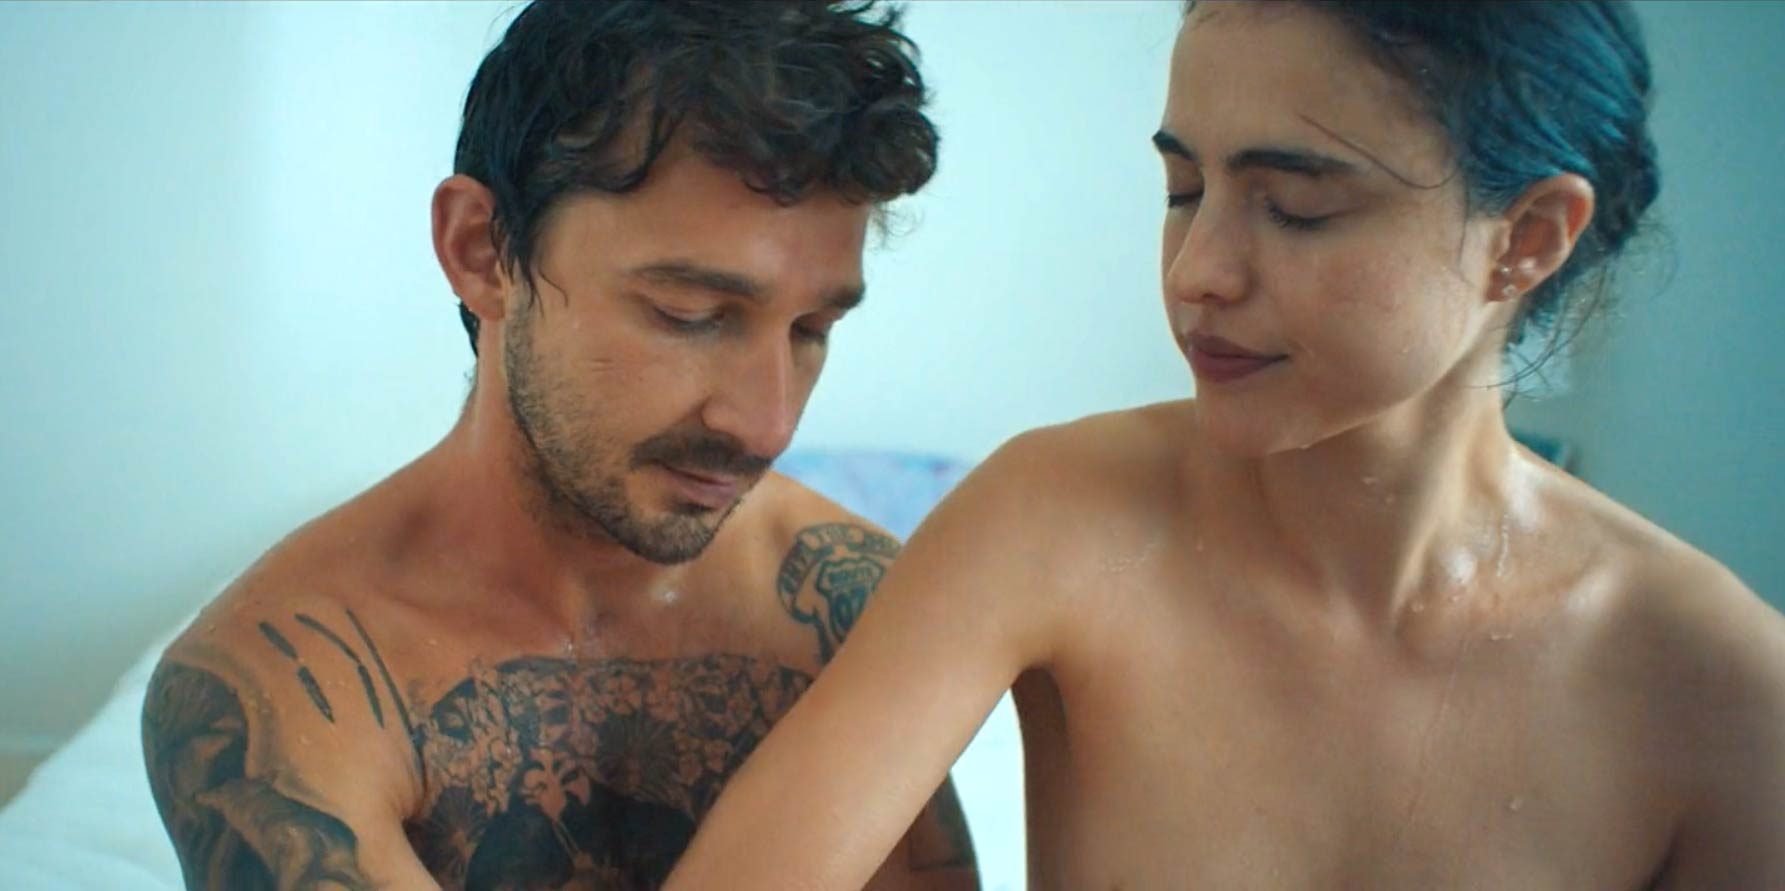 Shia LaBeouf y Margaret Qualley se desnudan en este intenso video musical NSFW